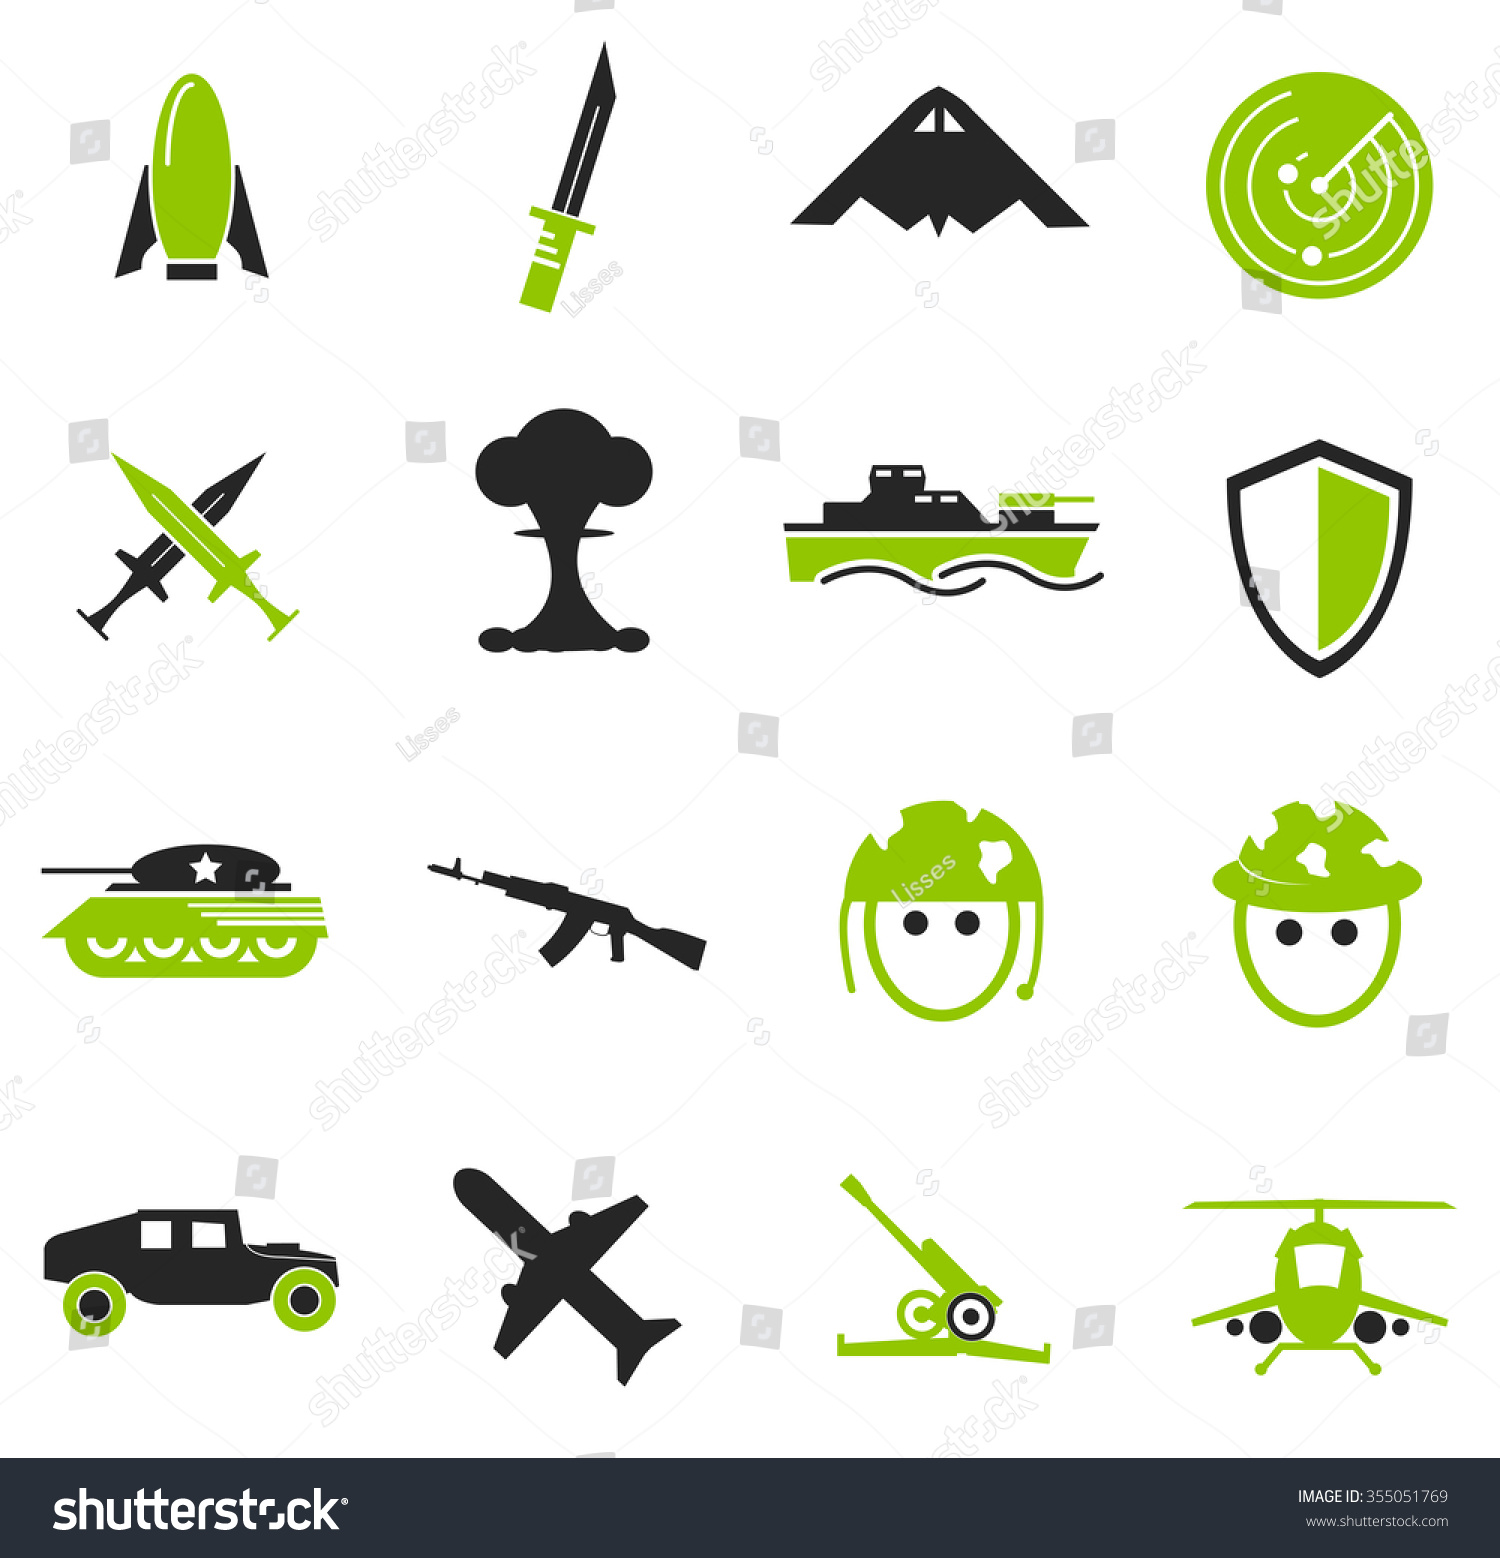 Military war symbol web icons stock vector 355051769 shutterstock military and war symbol for web icons biocorpaavc Images